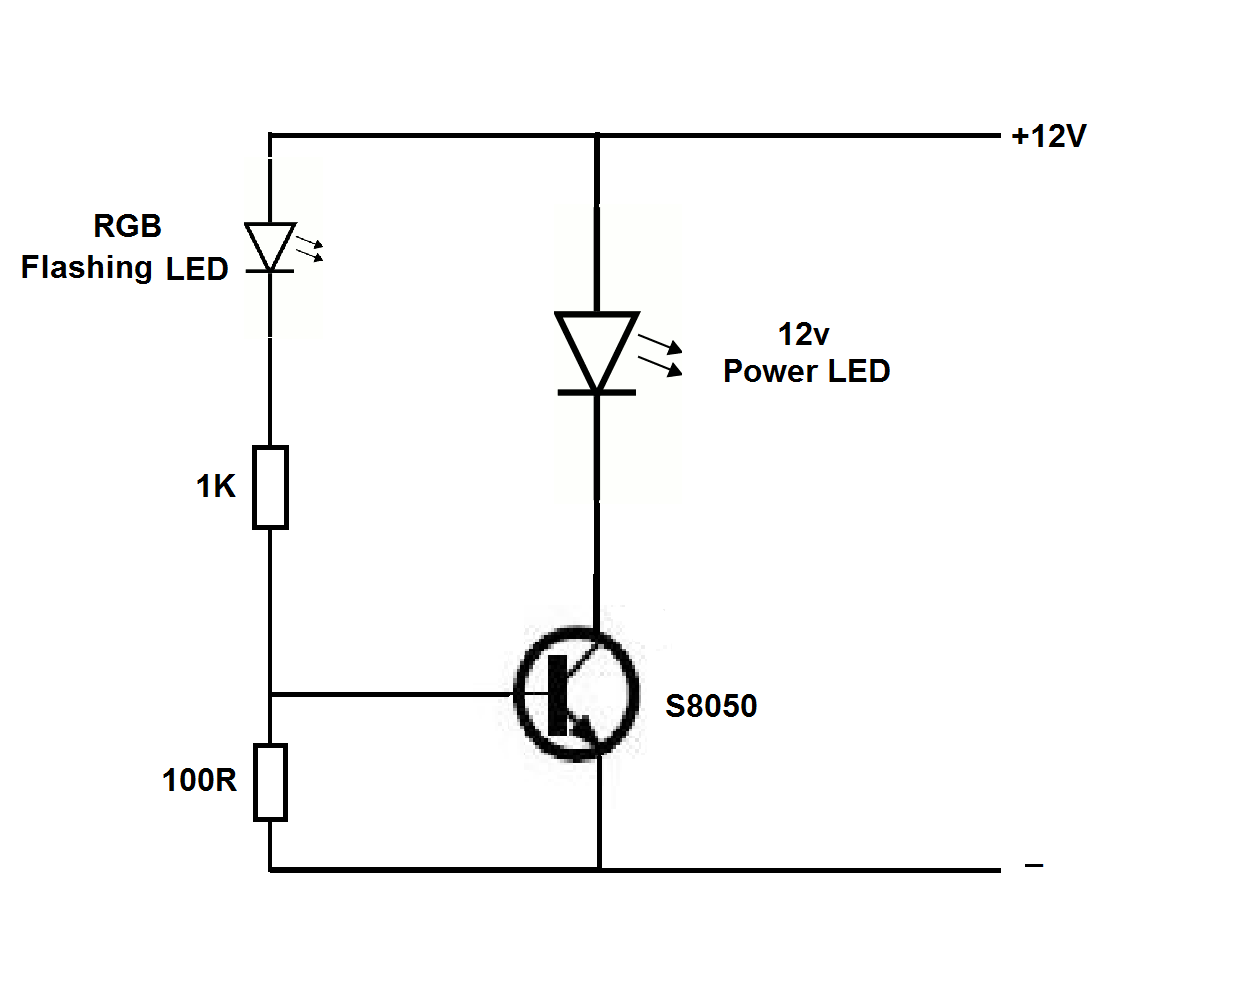 flasher%2Busing%2Bflashing%2BLED 12v power led flasher circuit using rgb flashing led ~ simple projects led flasher wiring diagram at cita.asia